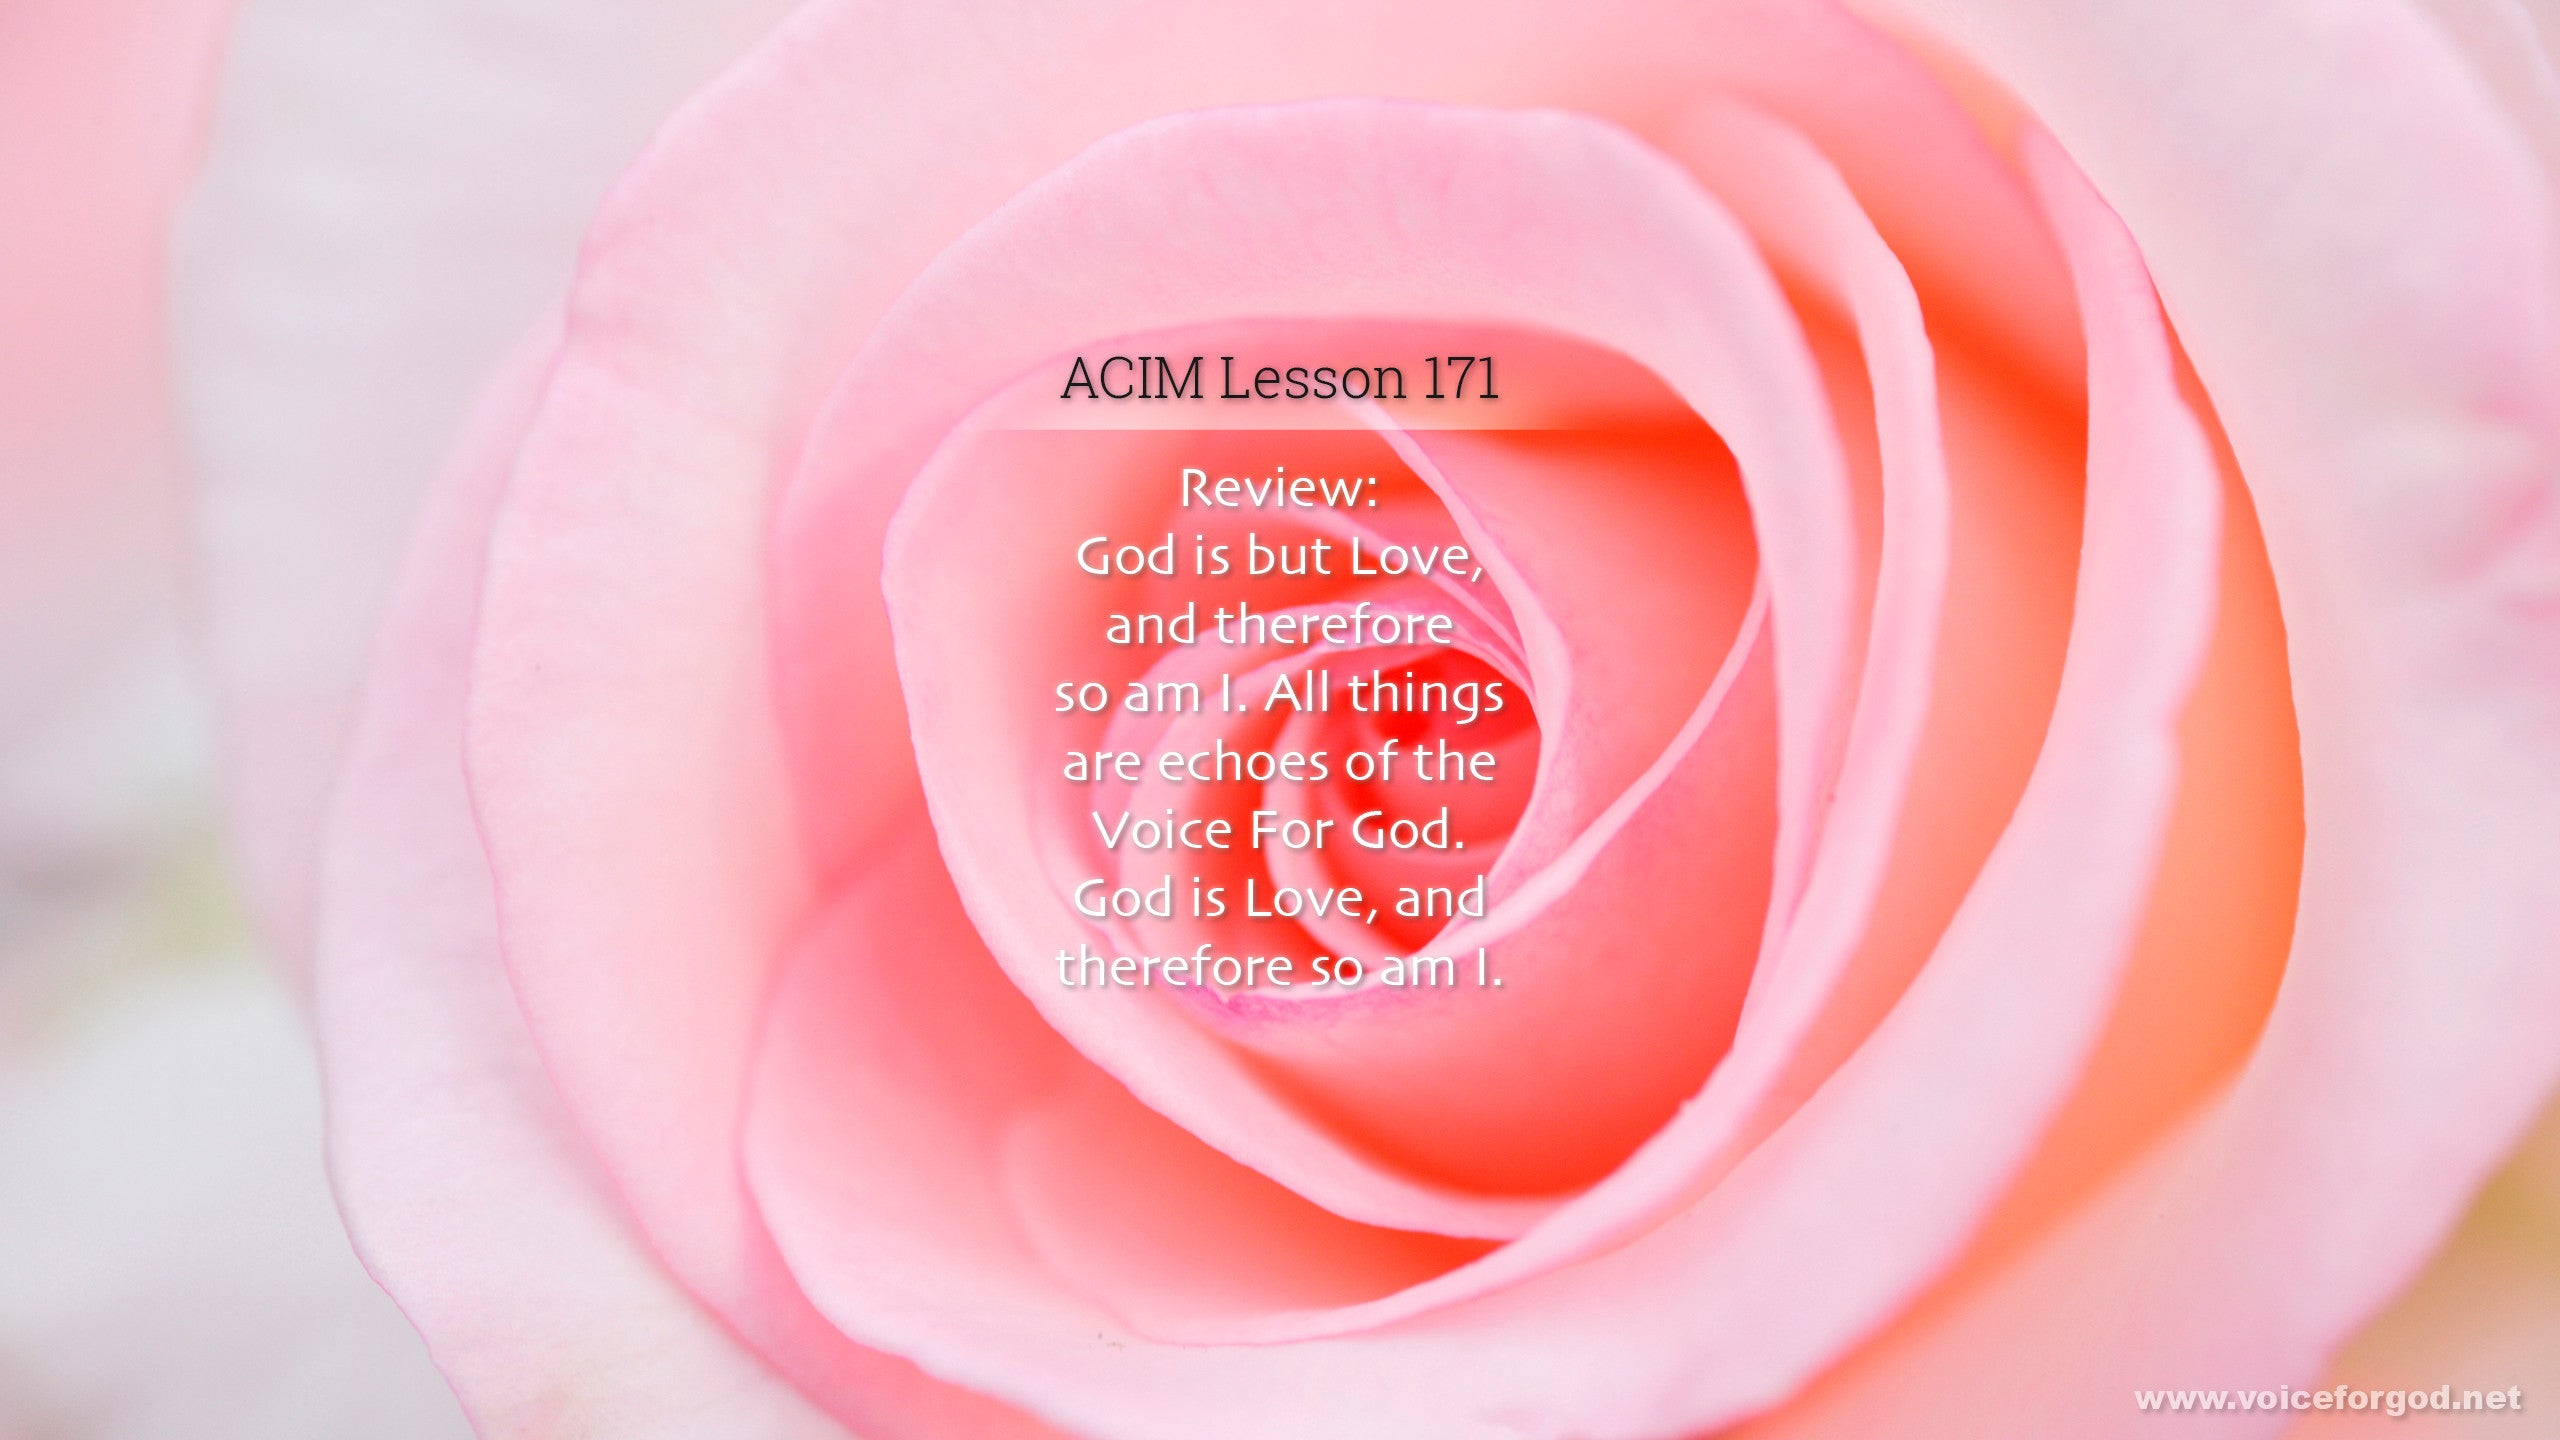 ACIM Lesson 171 - A Course in Miracles Workbook Lesson 171